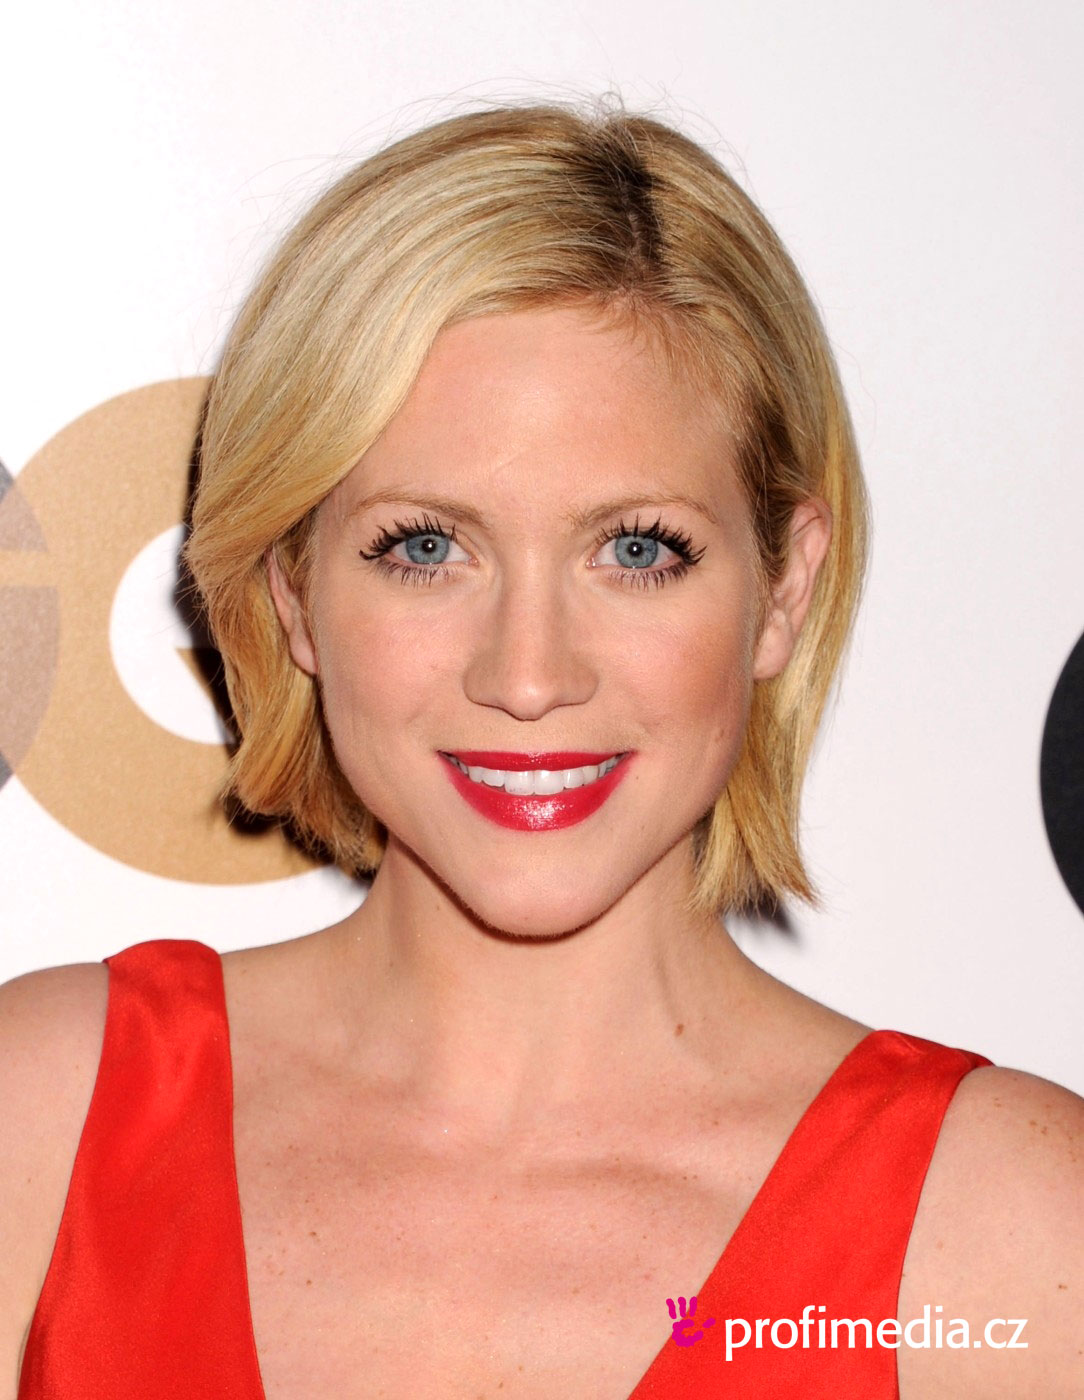 brittany snow frisur zum ausprobieren in efrisuren. Black Bedroom Furniture Sets. Home Design Ideas